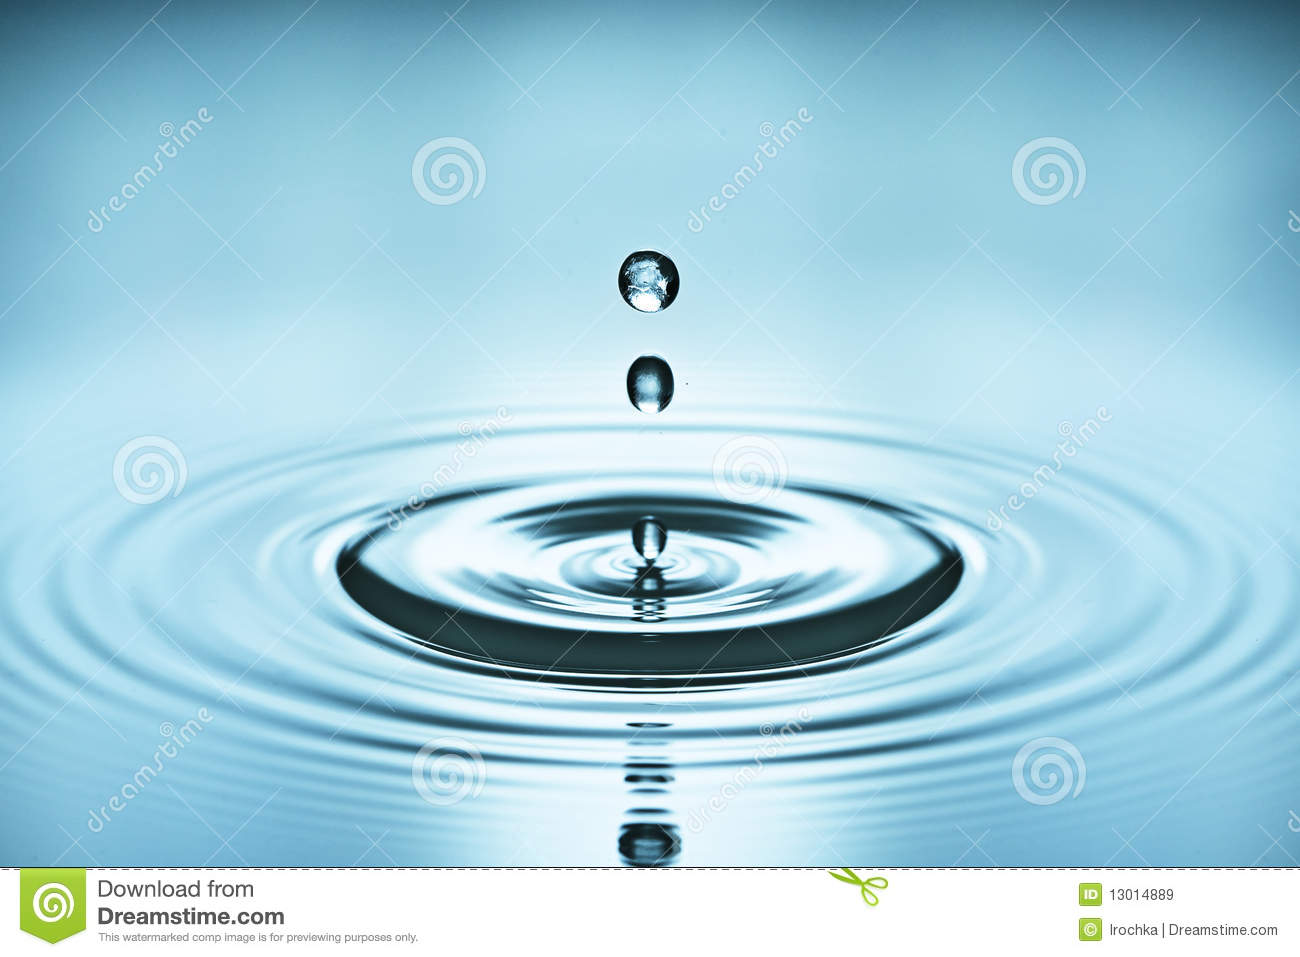 Drops of water causing ripples